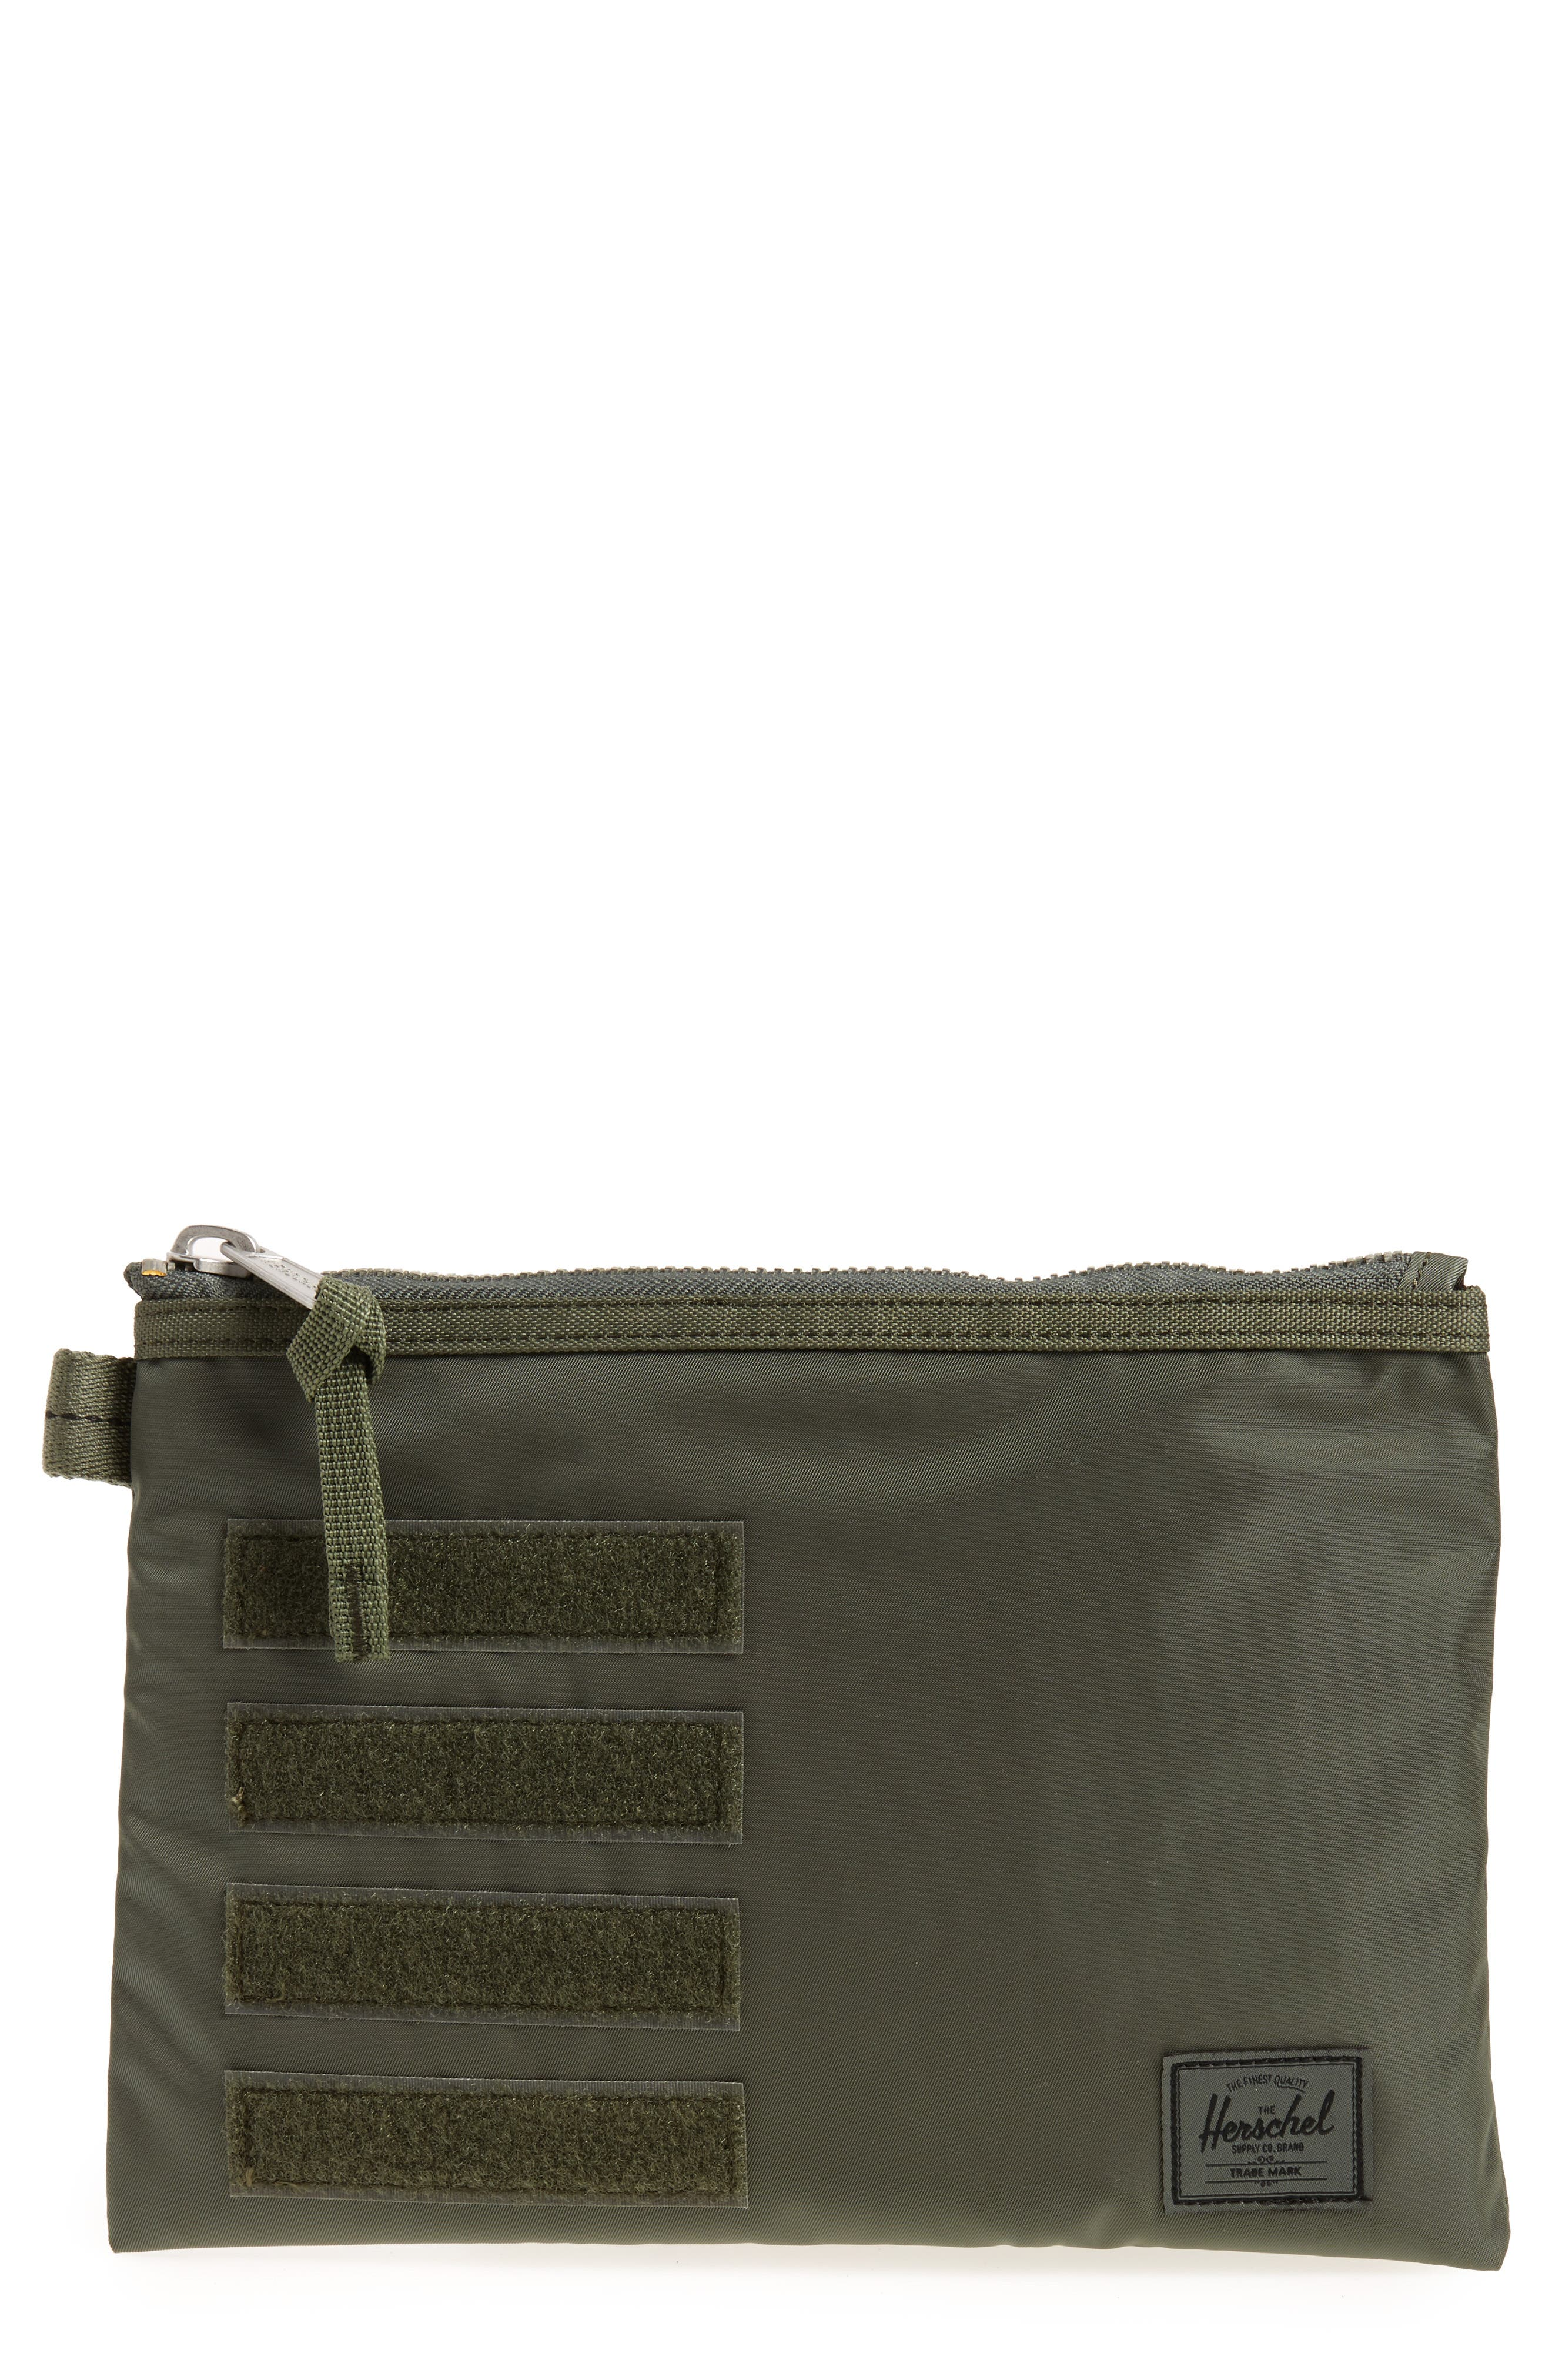 Alternate Image 1 Selected - Herschel Supply Co. Network Pouch Surplus Collection Portfolio